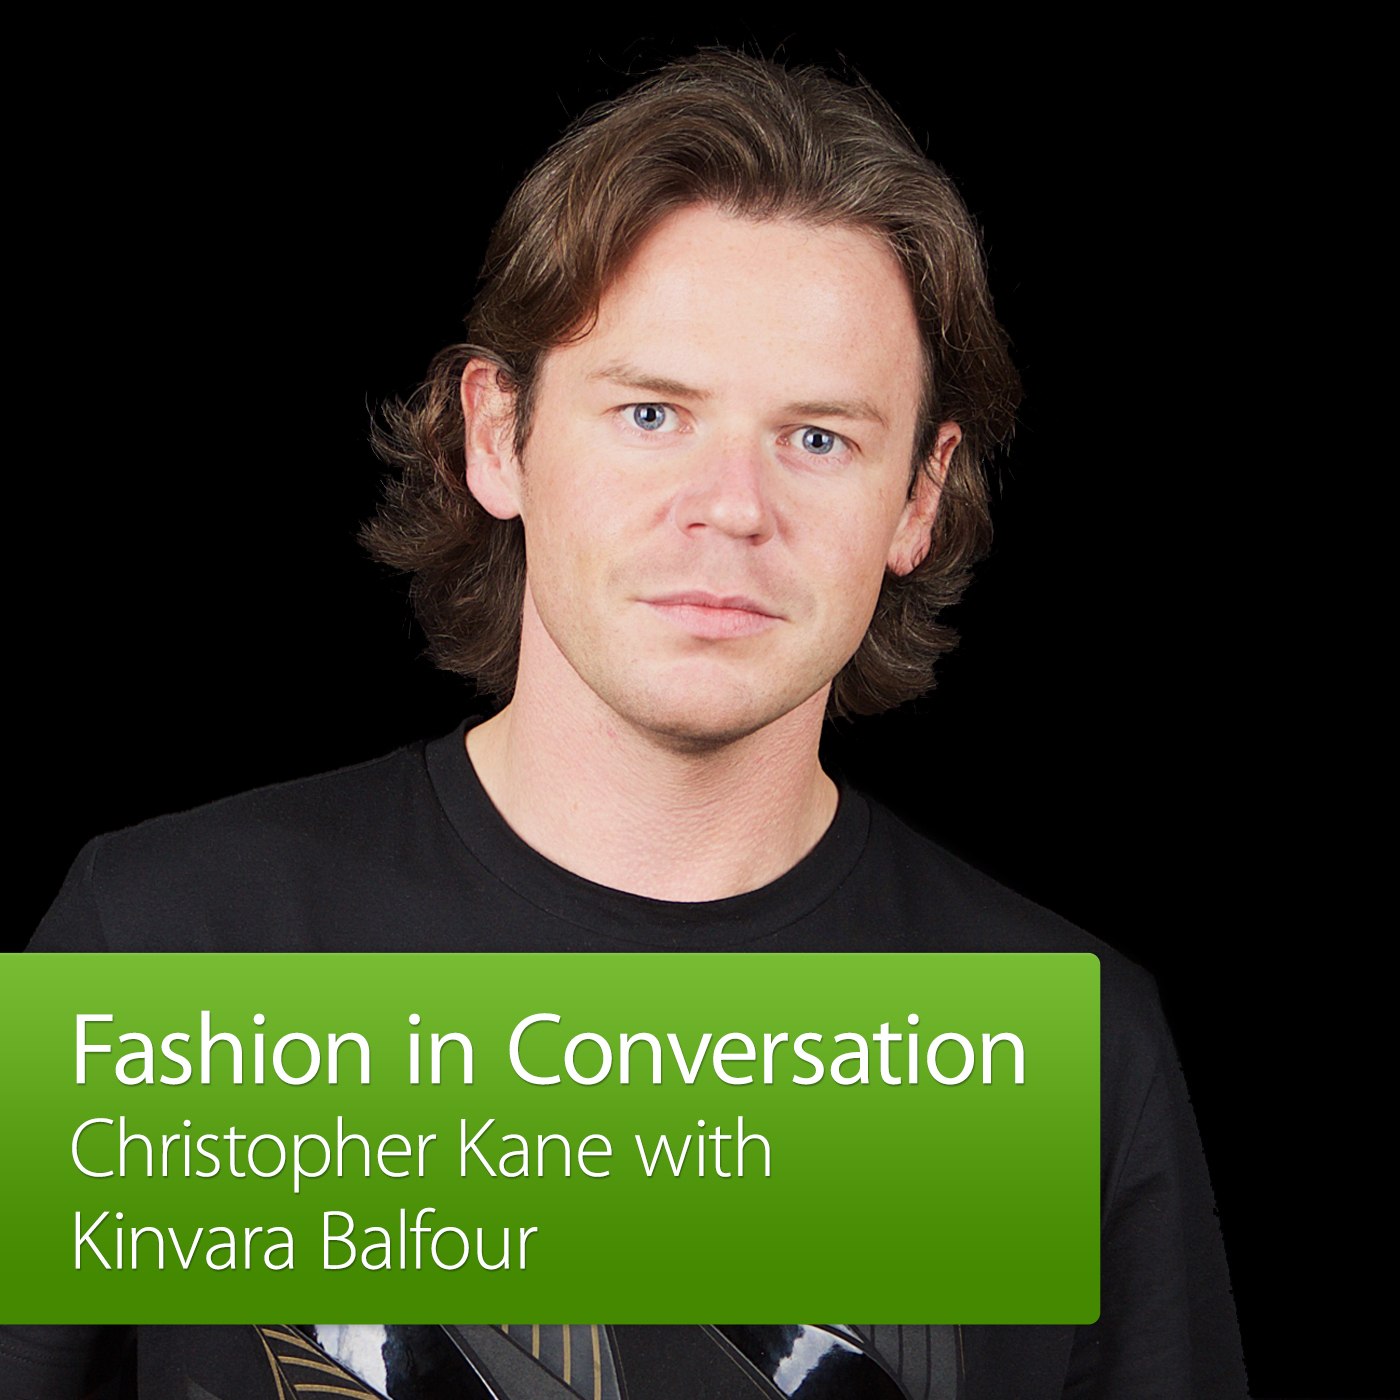 Christopher Kane with Kinvara Balfour